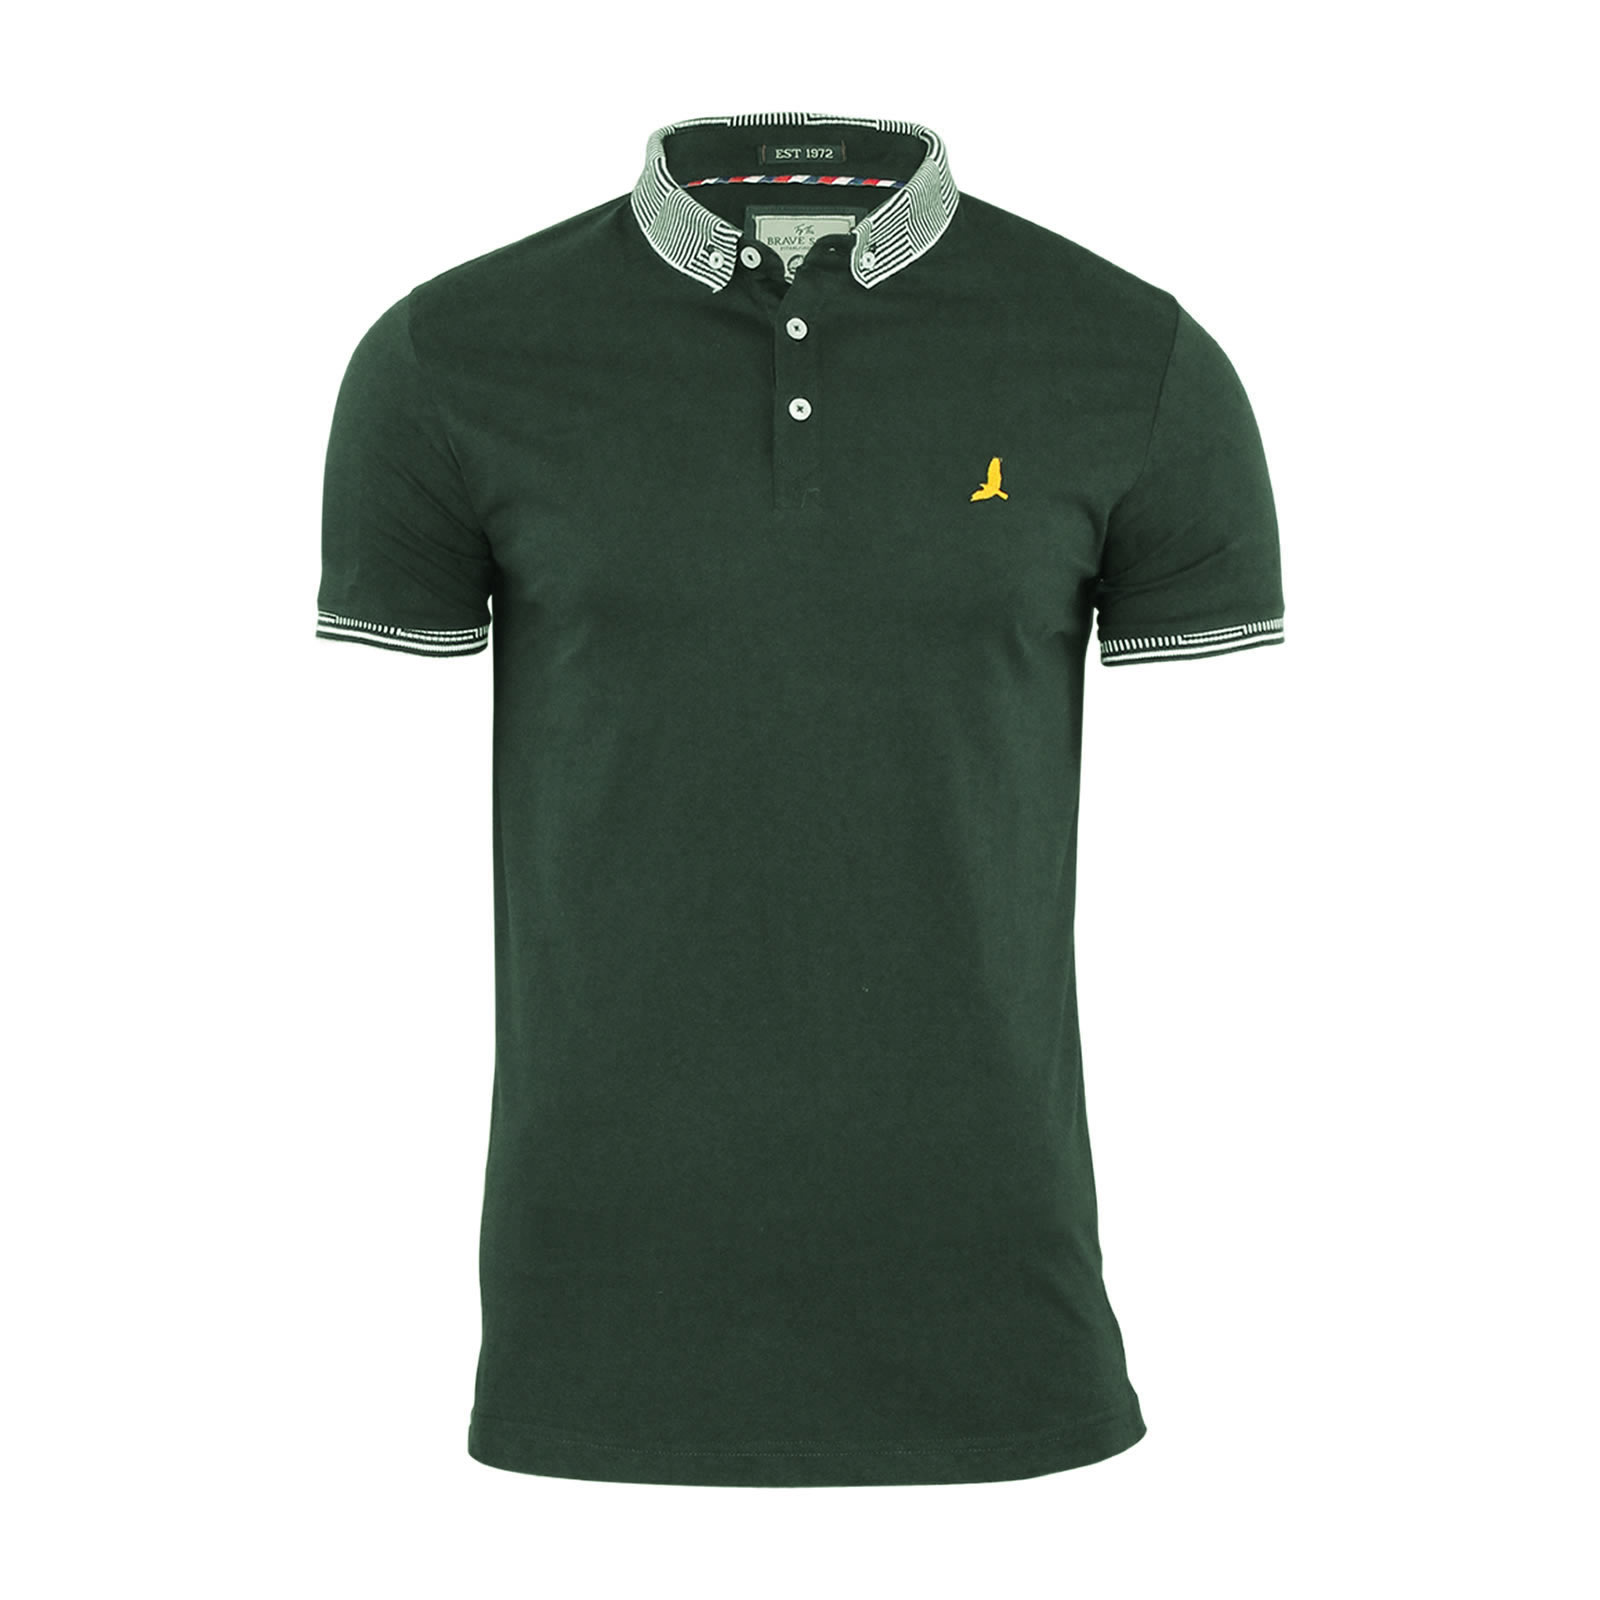 Mens-Polo-T-Shirt-Brave-Soul-Glover-Cotton-Collared-Short-Sleeve-Casual-Top thumbnail 21